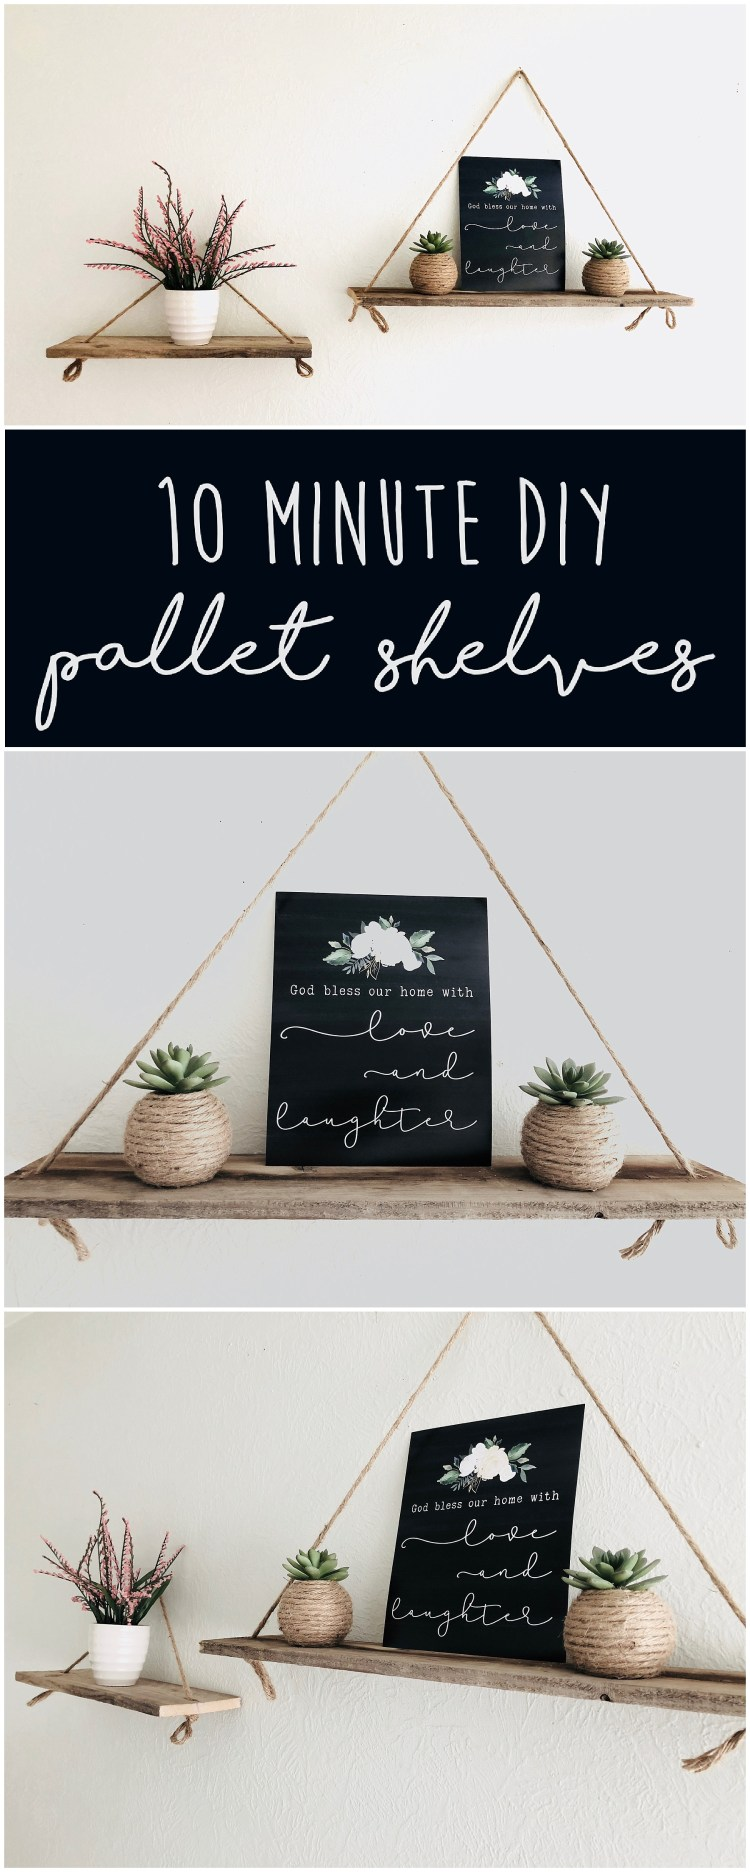 DIY Pallet Shelves | DIY Pallet Shelves Instructions | DIY Pallet Shelves Tutorial | Diy Pallet Shelves Step by Step | Making Pallet Shelves | Build Pallet Shelves | Diy Pallet Floating Shelves | DIY Pallet Hanging Shelves | Pallet Ideas for Walls | Pallet Ideas DIY | Pallet Craft Ideas